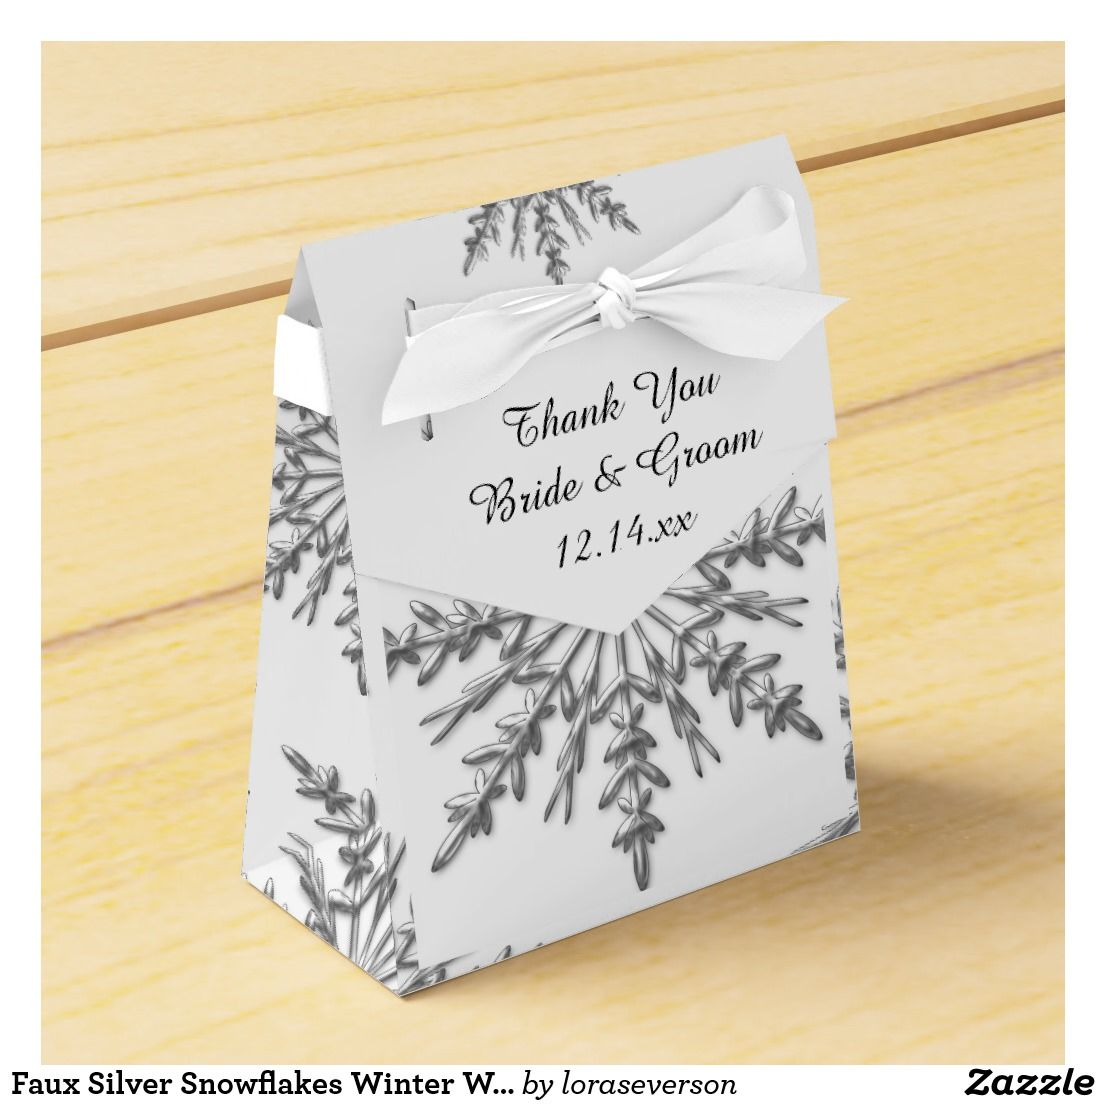 Faux Silver Snowflakes Winter Wedding Favor Box | Wedding Favors ...